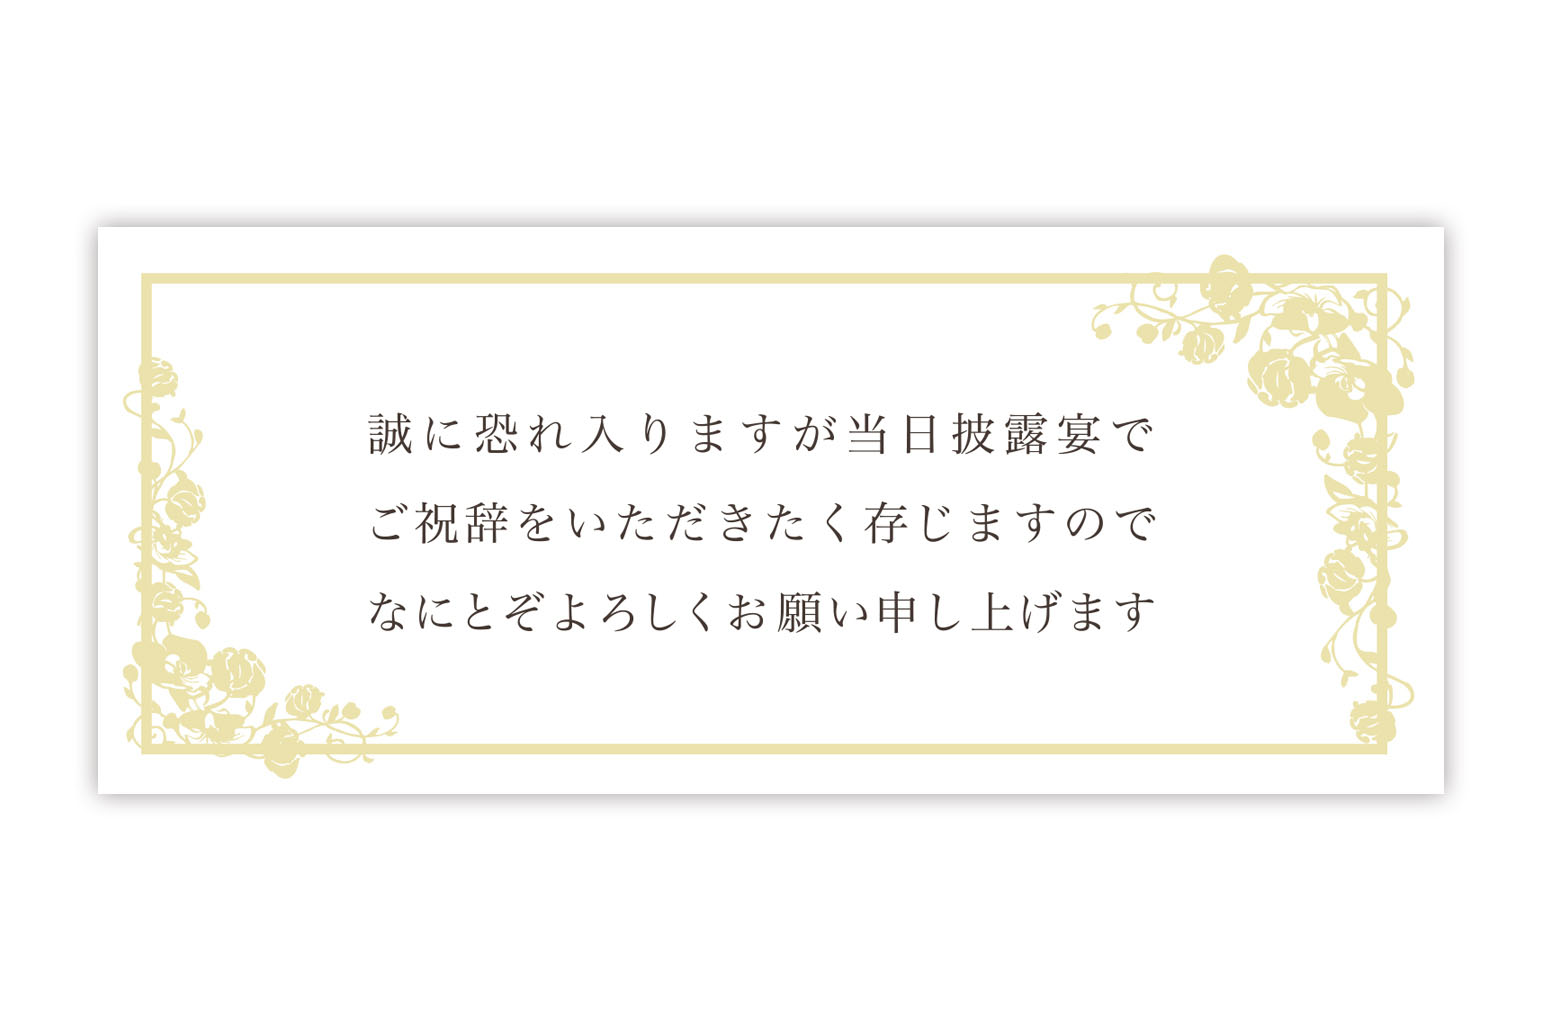 Tagged Messages: MESSAGE TAG Beige祝辞依頼付箋 洋(ベージュ)/ウェディングアイテム/付箋・オプション- 結婚式招待